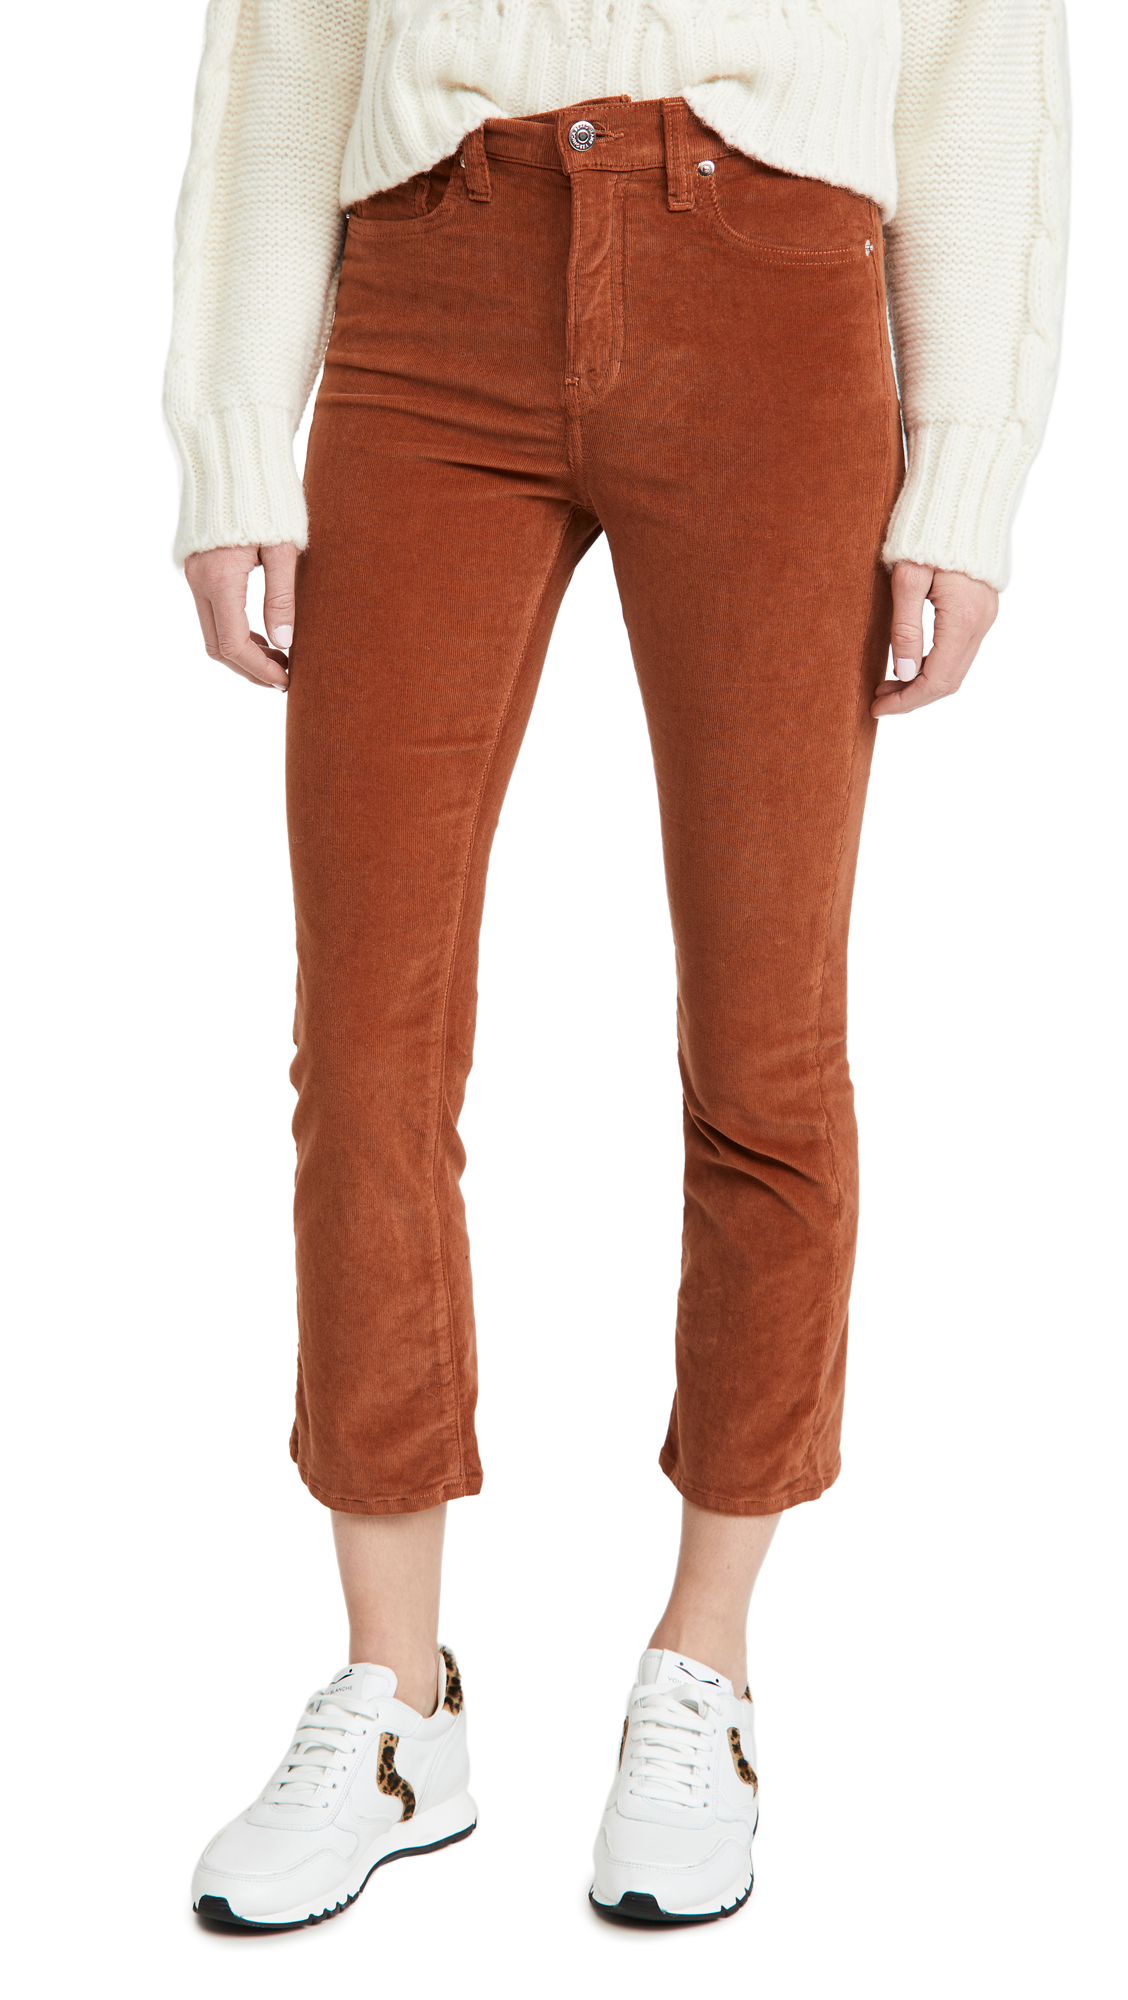 Veronica Beard Jean Carly Kick Flare Corduroy Pants